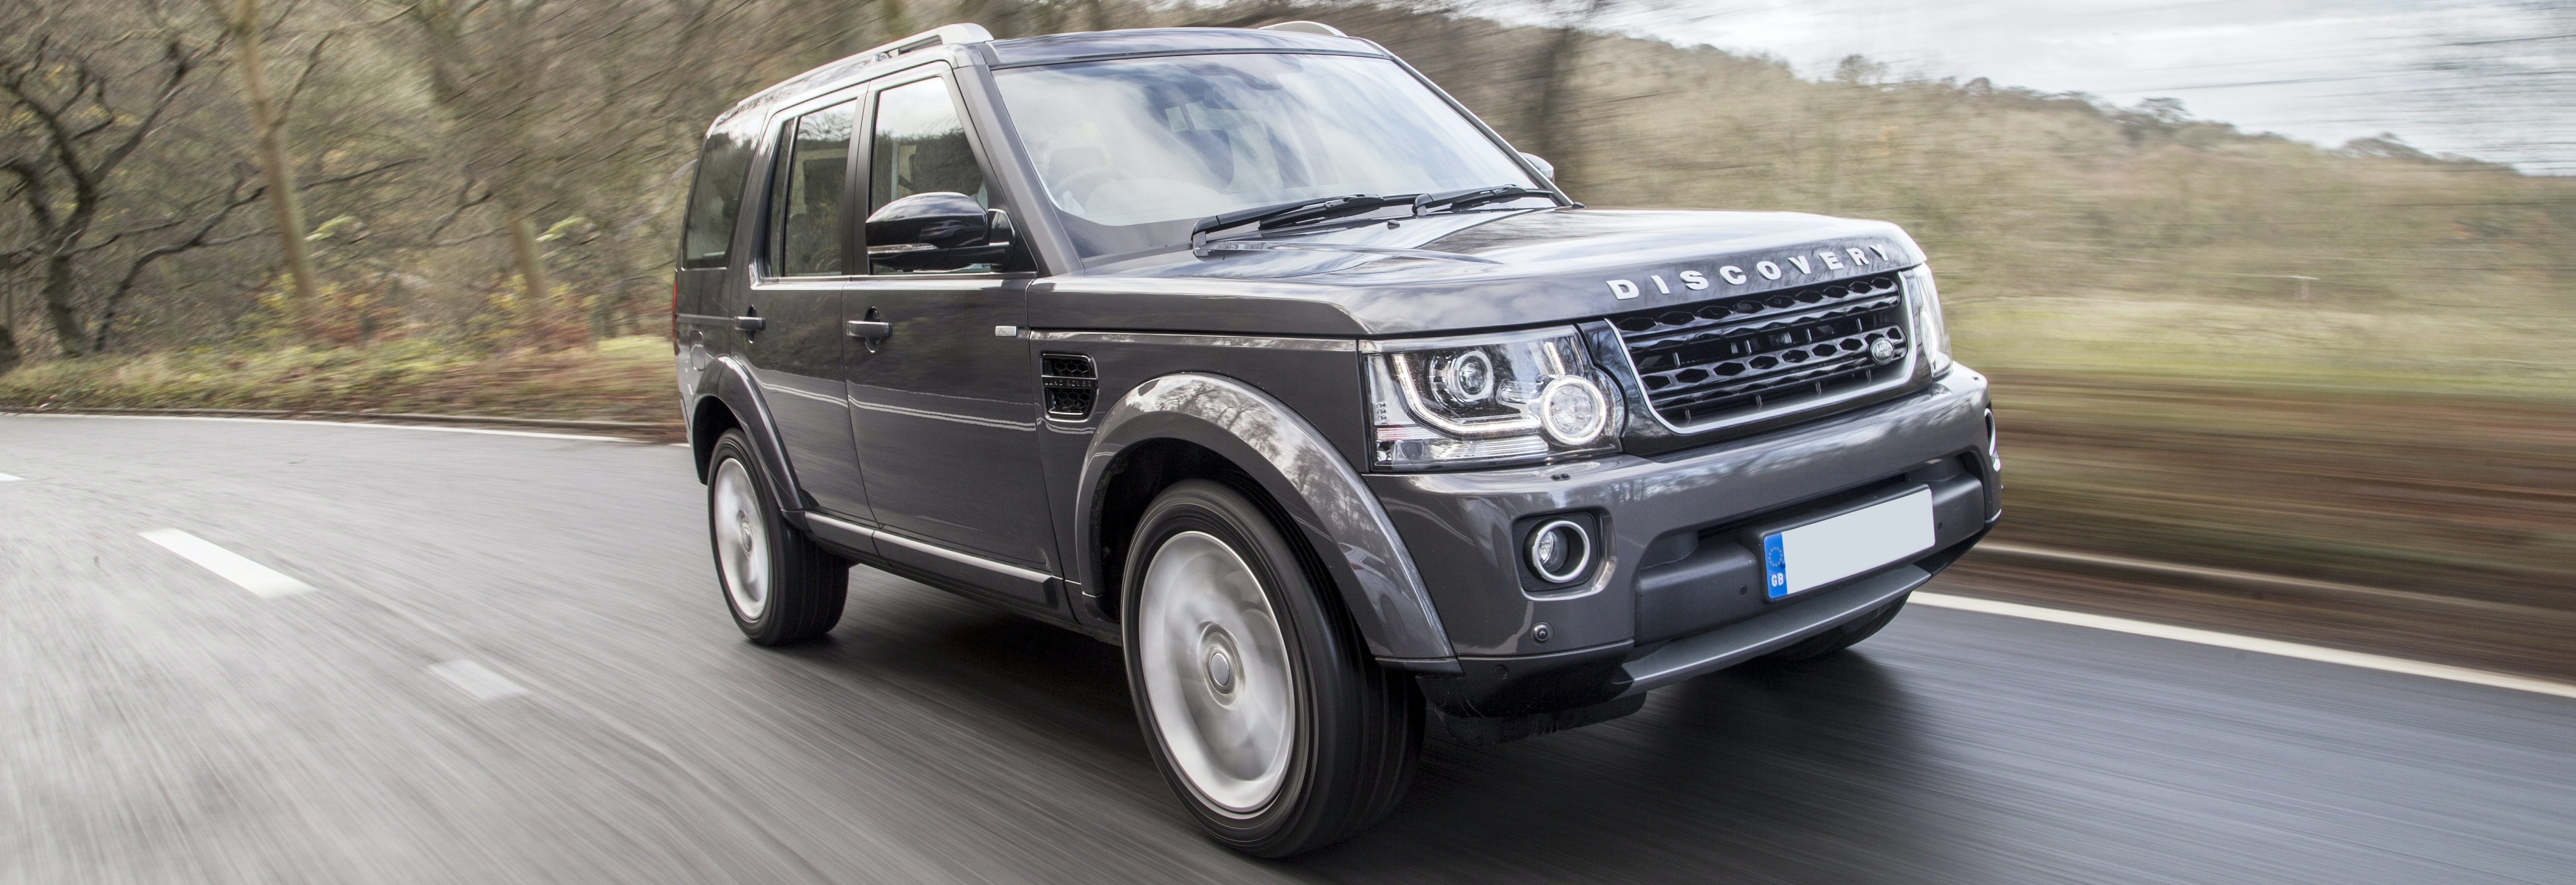 Land Rover Discovery Best 7 Seater Cars: The Top 10 Best Used 7 Seater Cars On Sale 2017-18